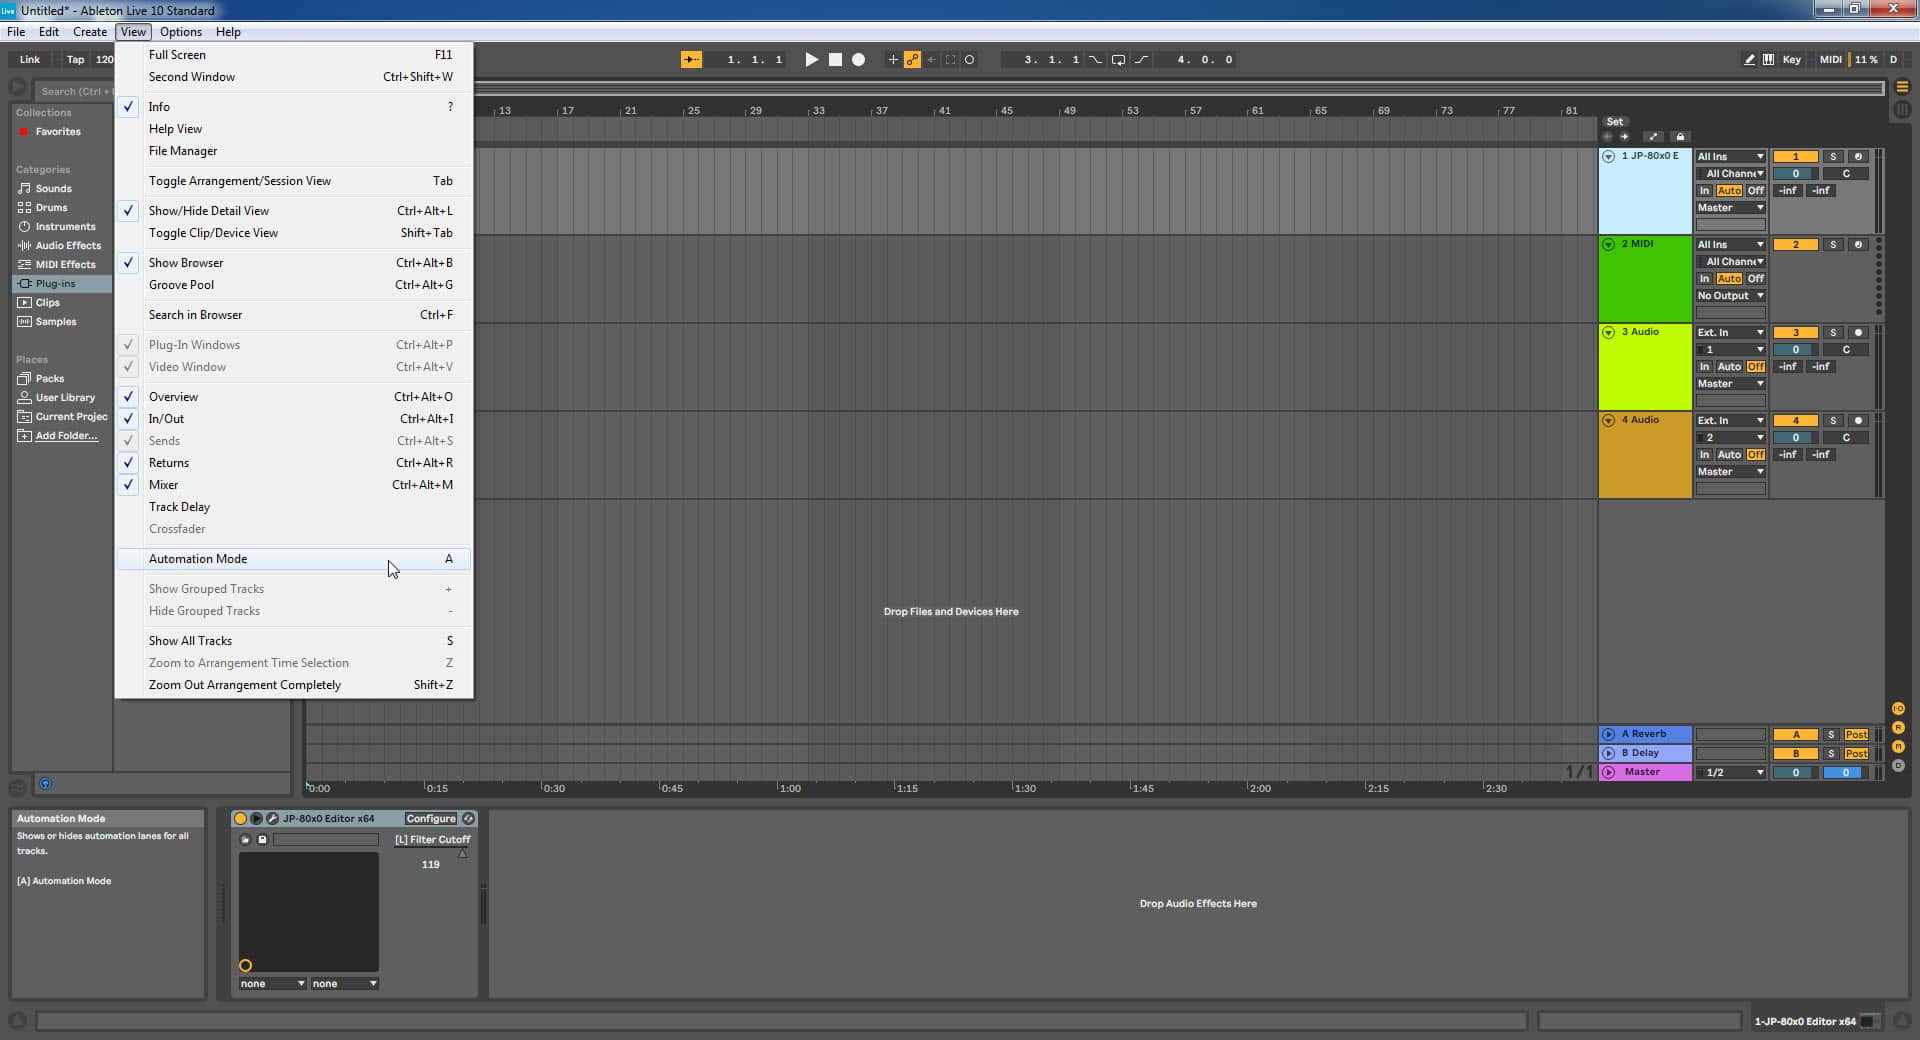 Ableton Live Config - Automation Mode view